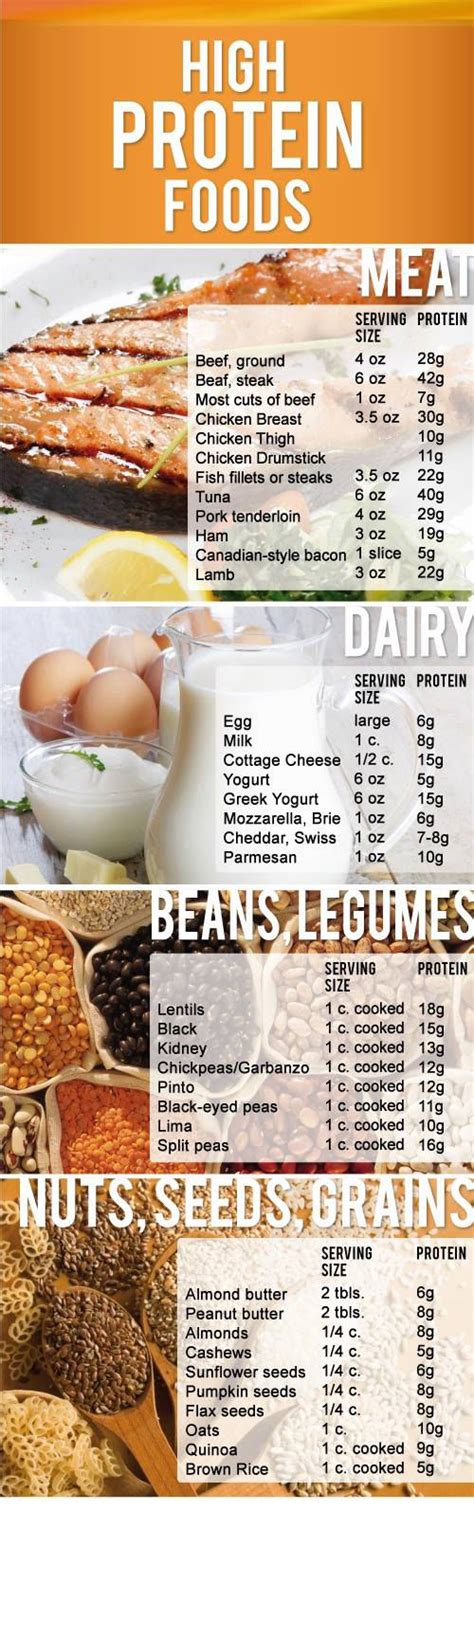 list of healthy fats bodybuilding high protein foods pictures photos and images for